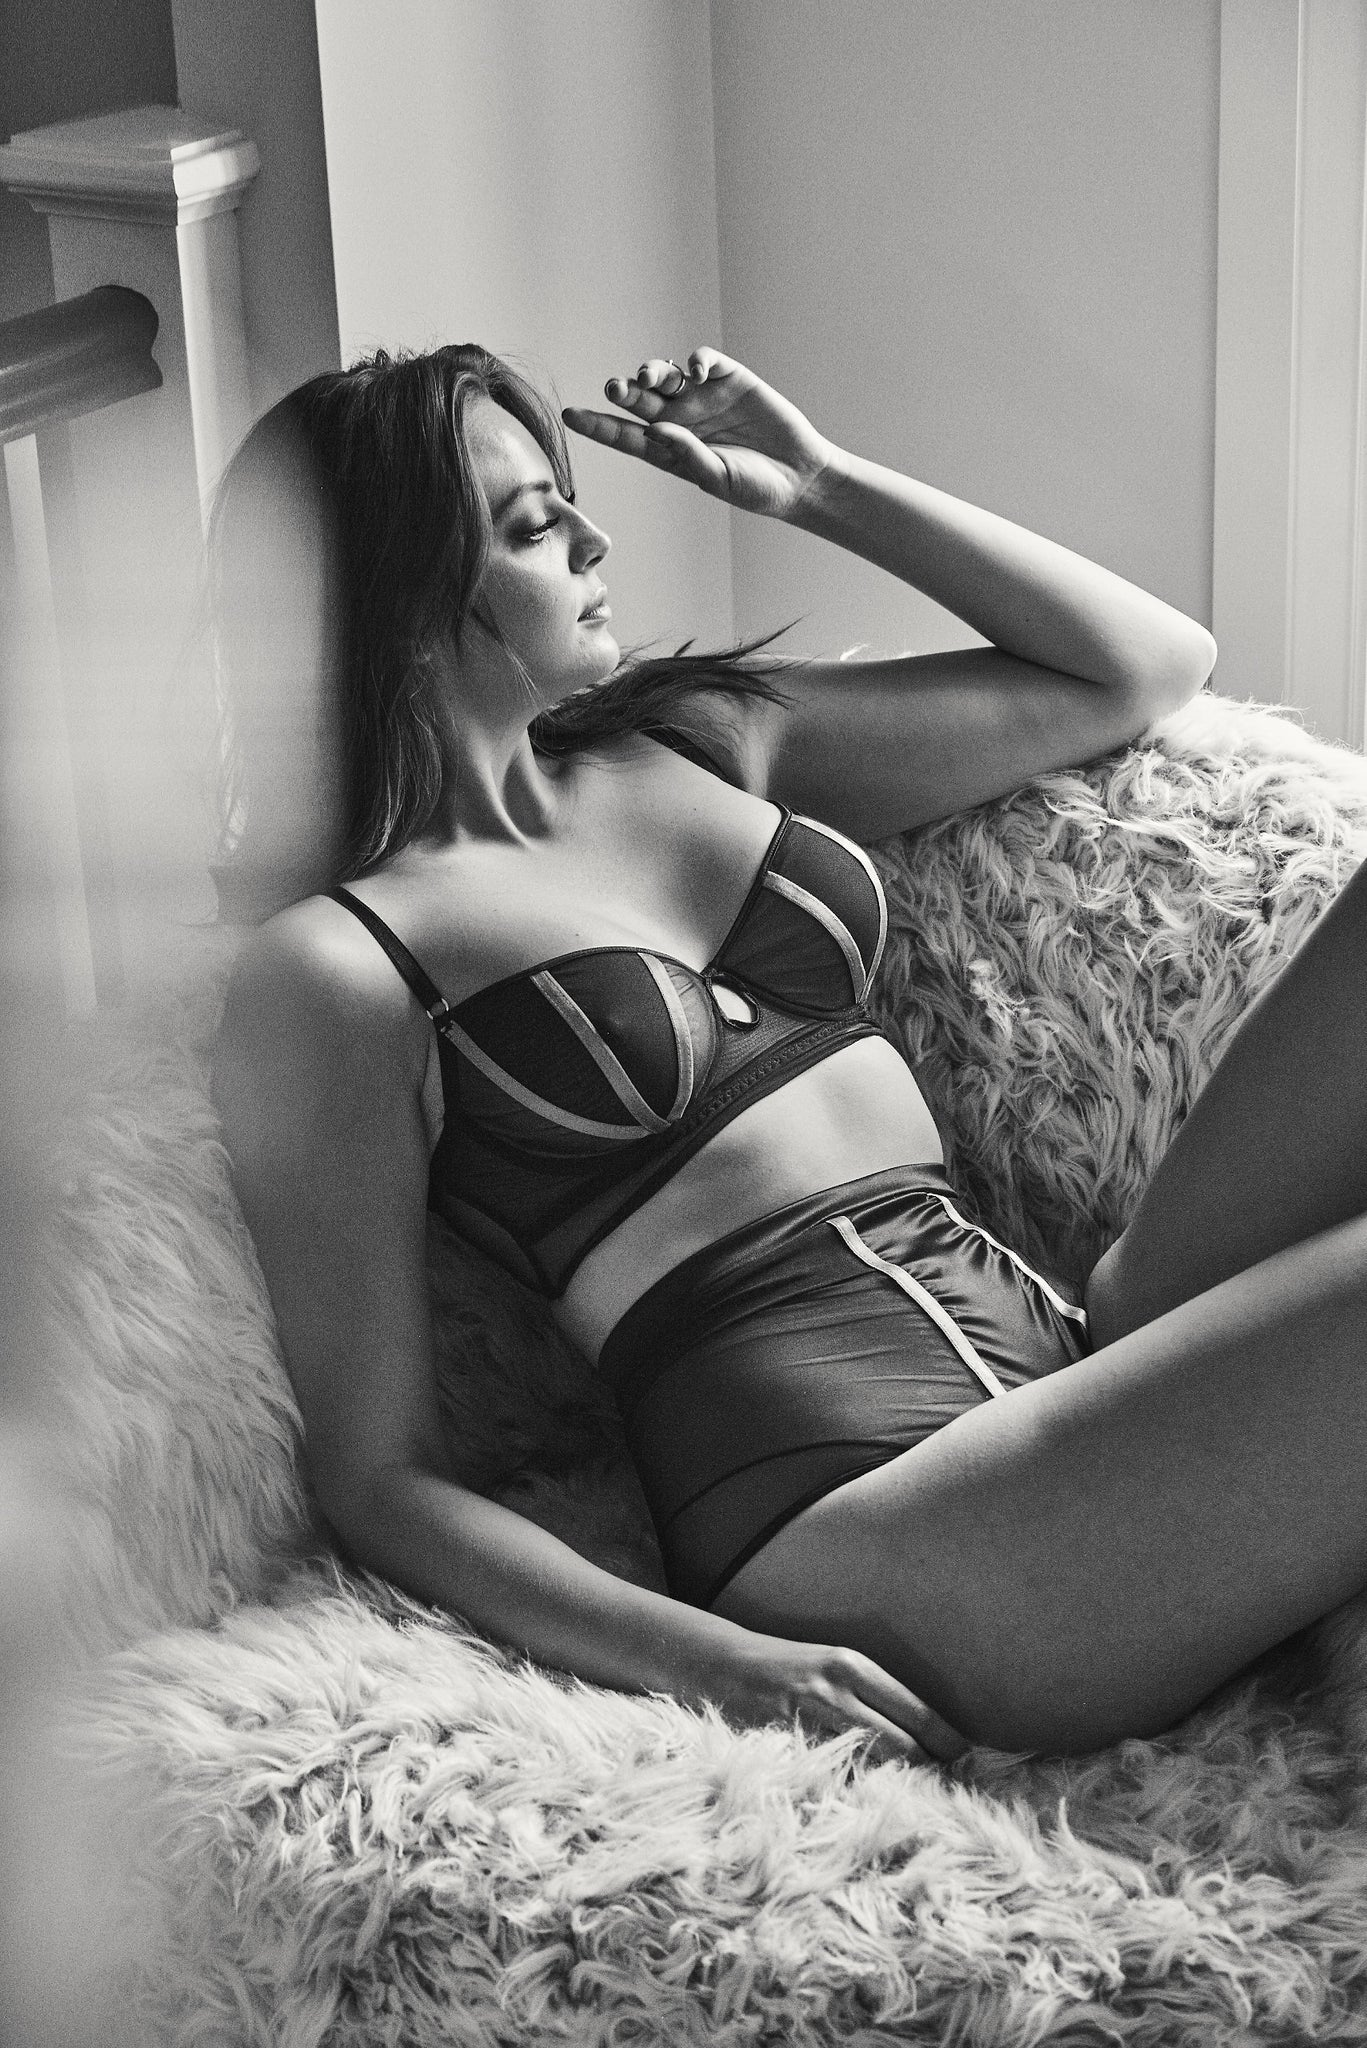 THE MODERN GUIDE TO GIFTING LINGERIE